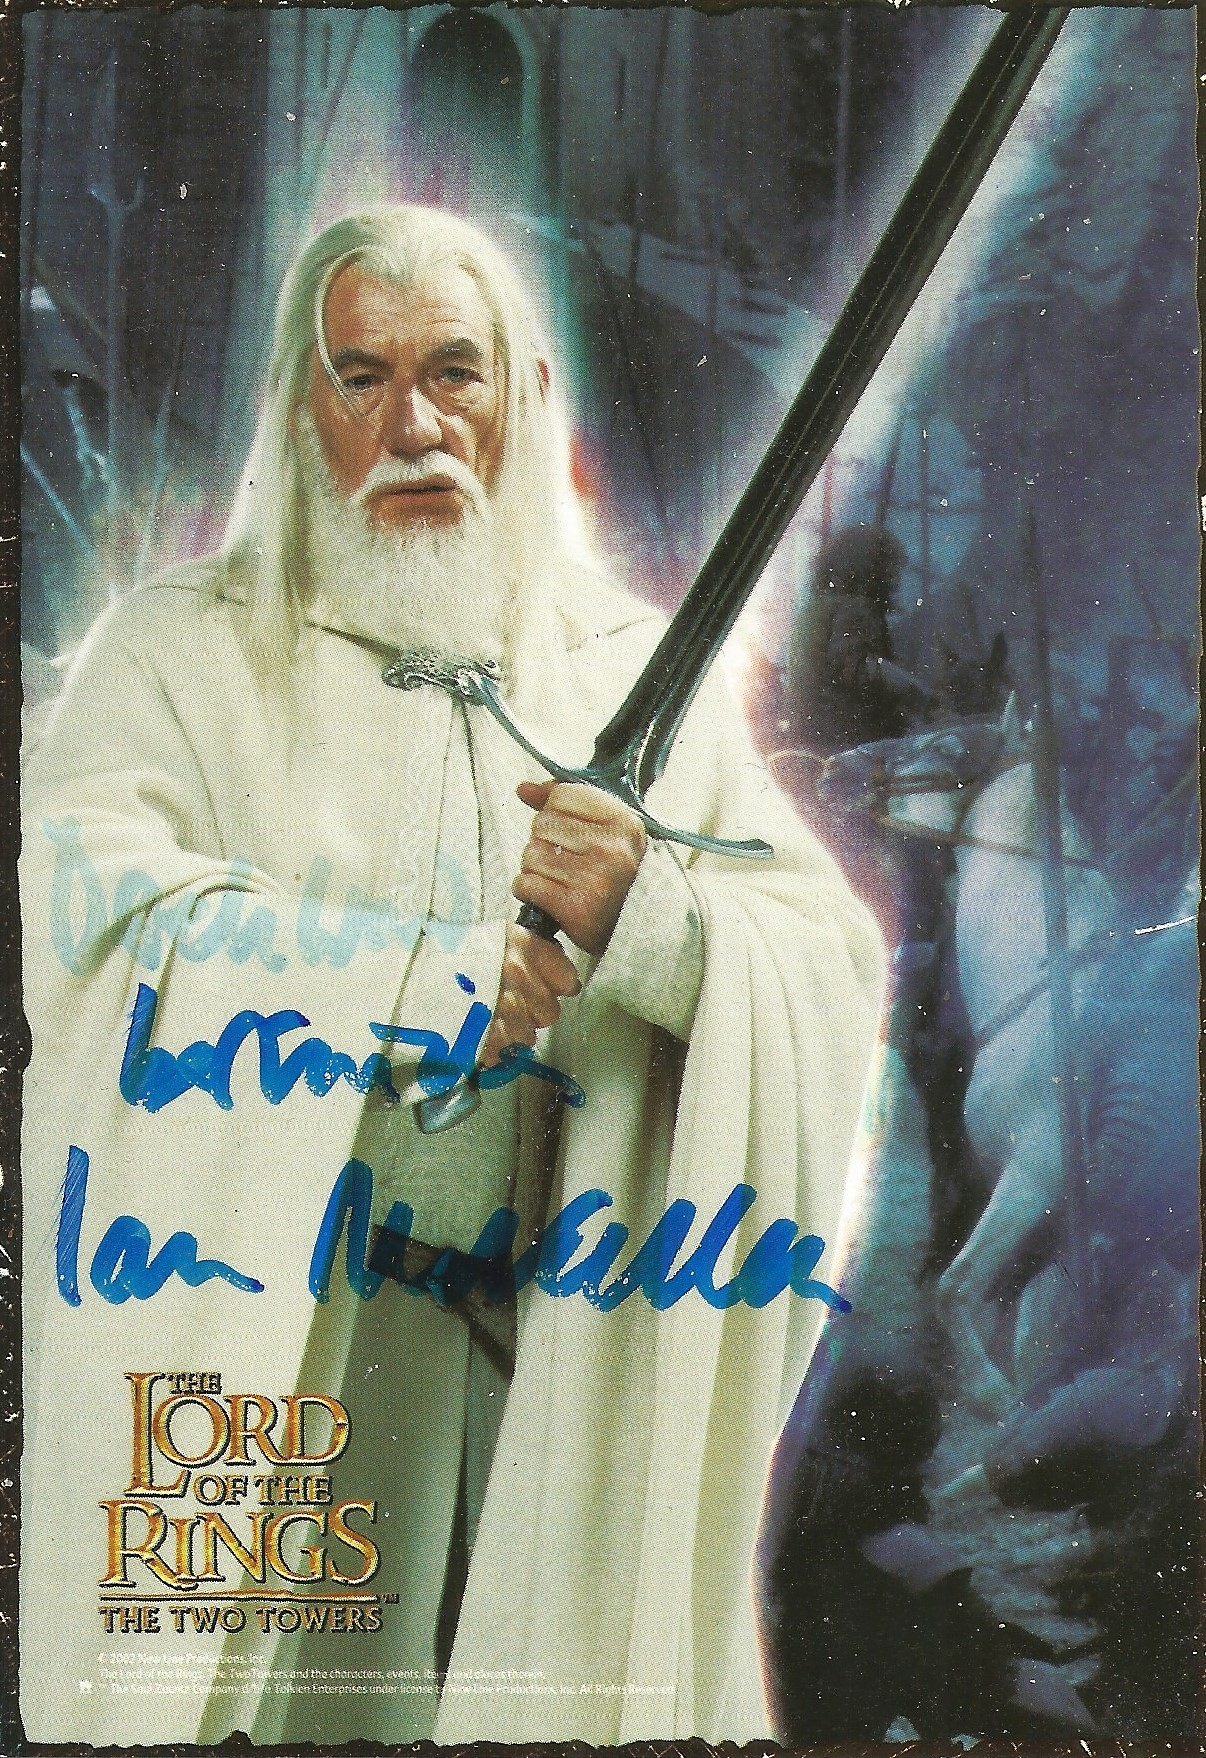 Ian McKellen signed 6x4 colour Lord of the Rings postcard. Good condition. All autographs come